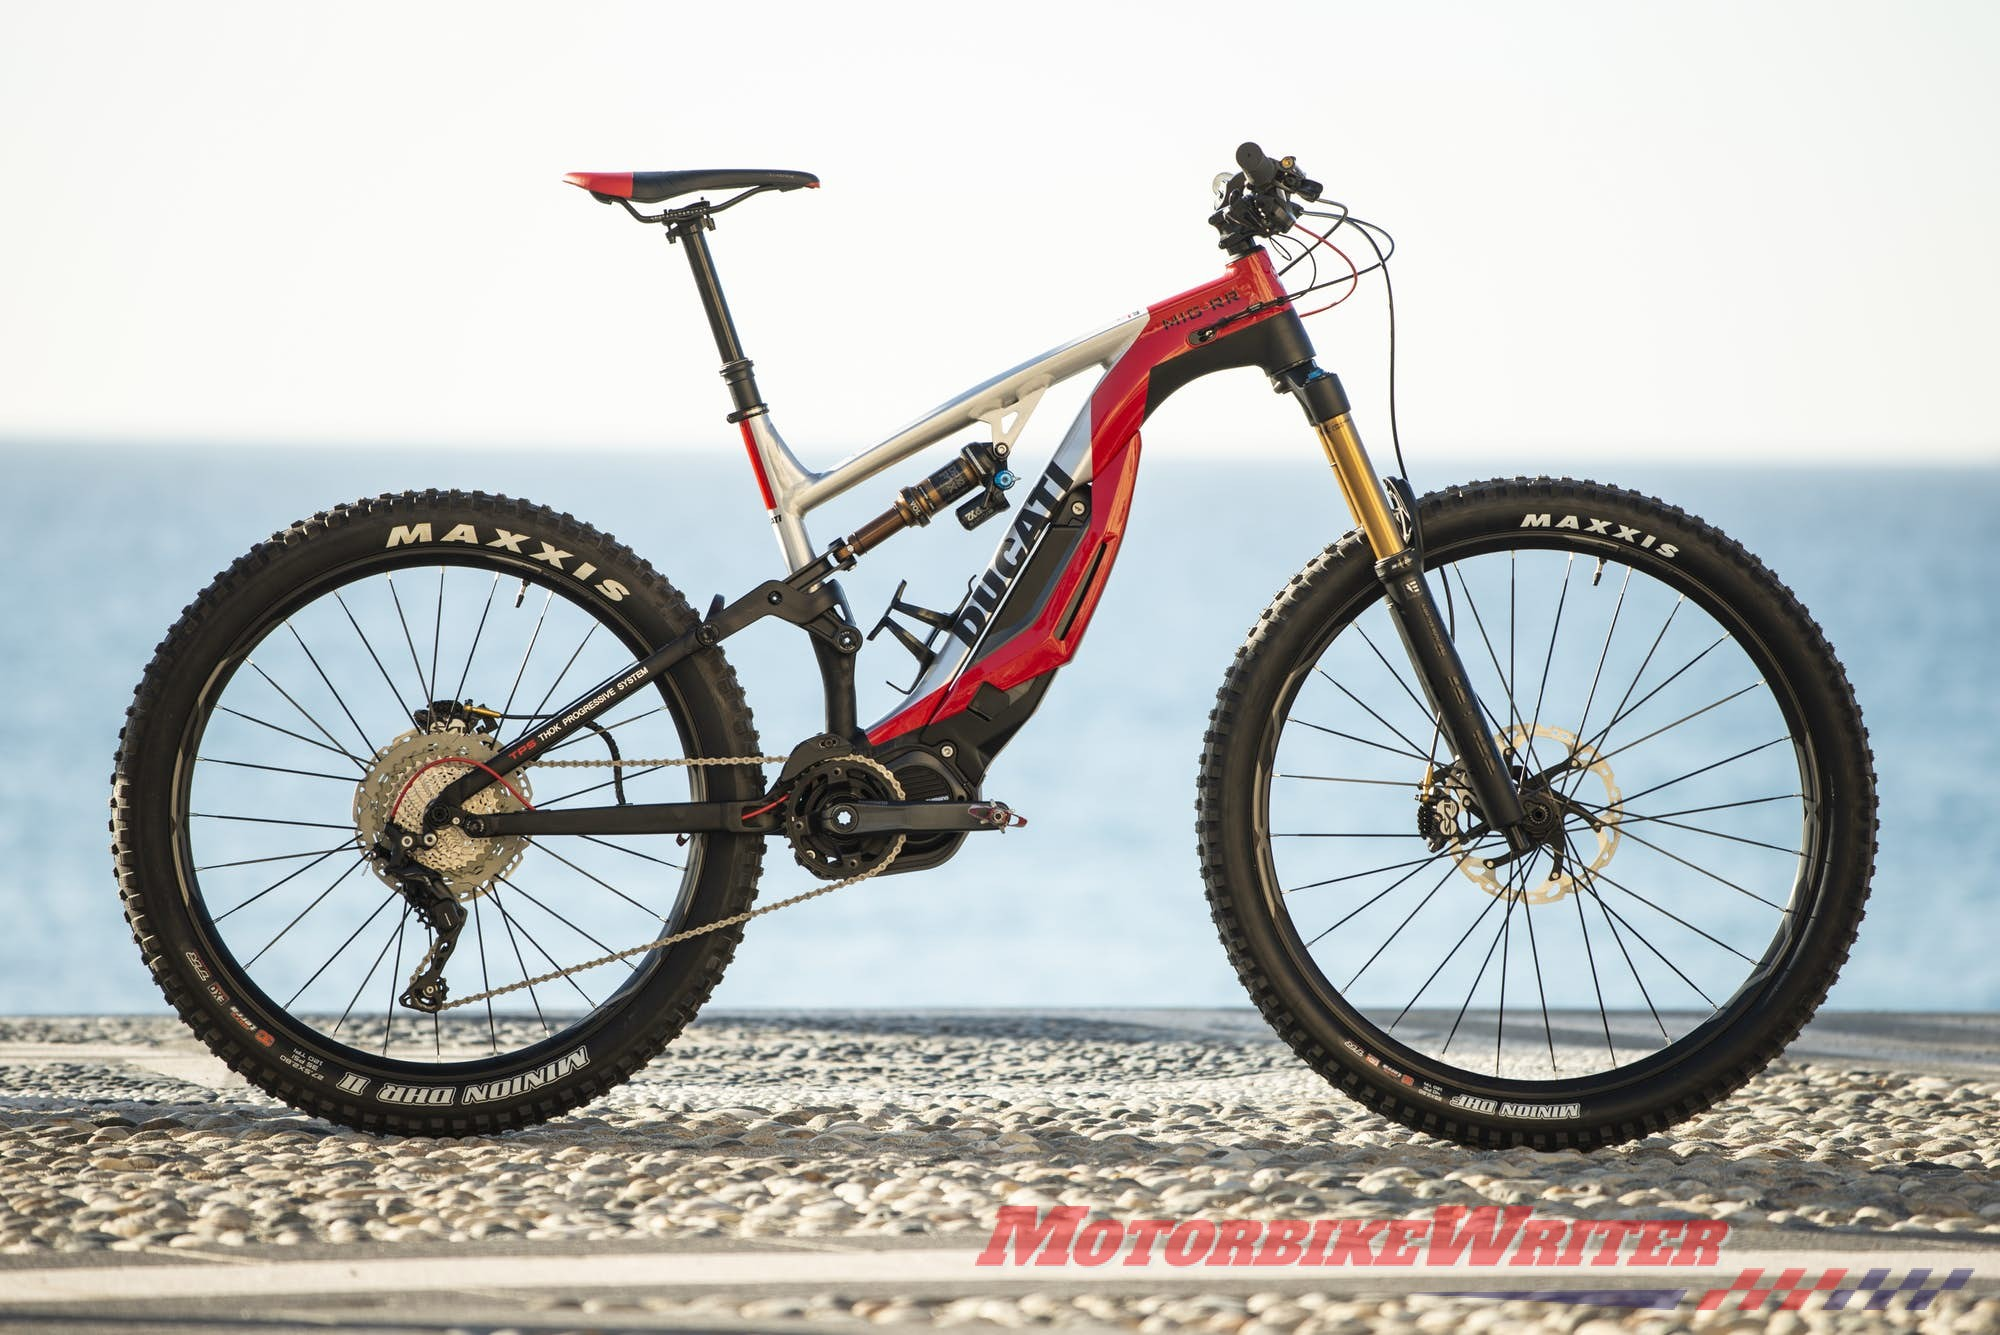 Ducati MIG-RR electric scooters mountain bike